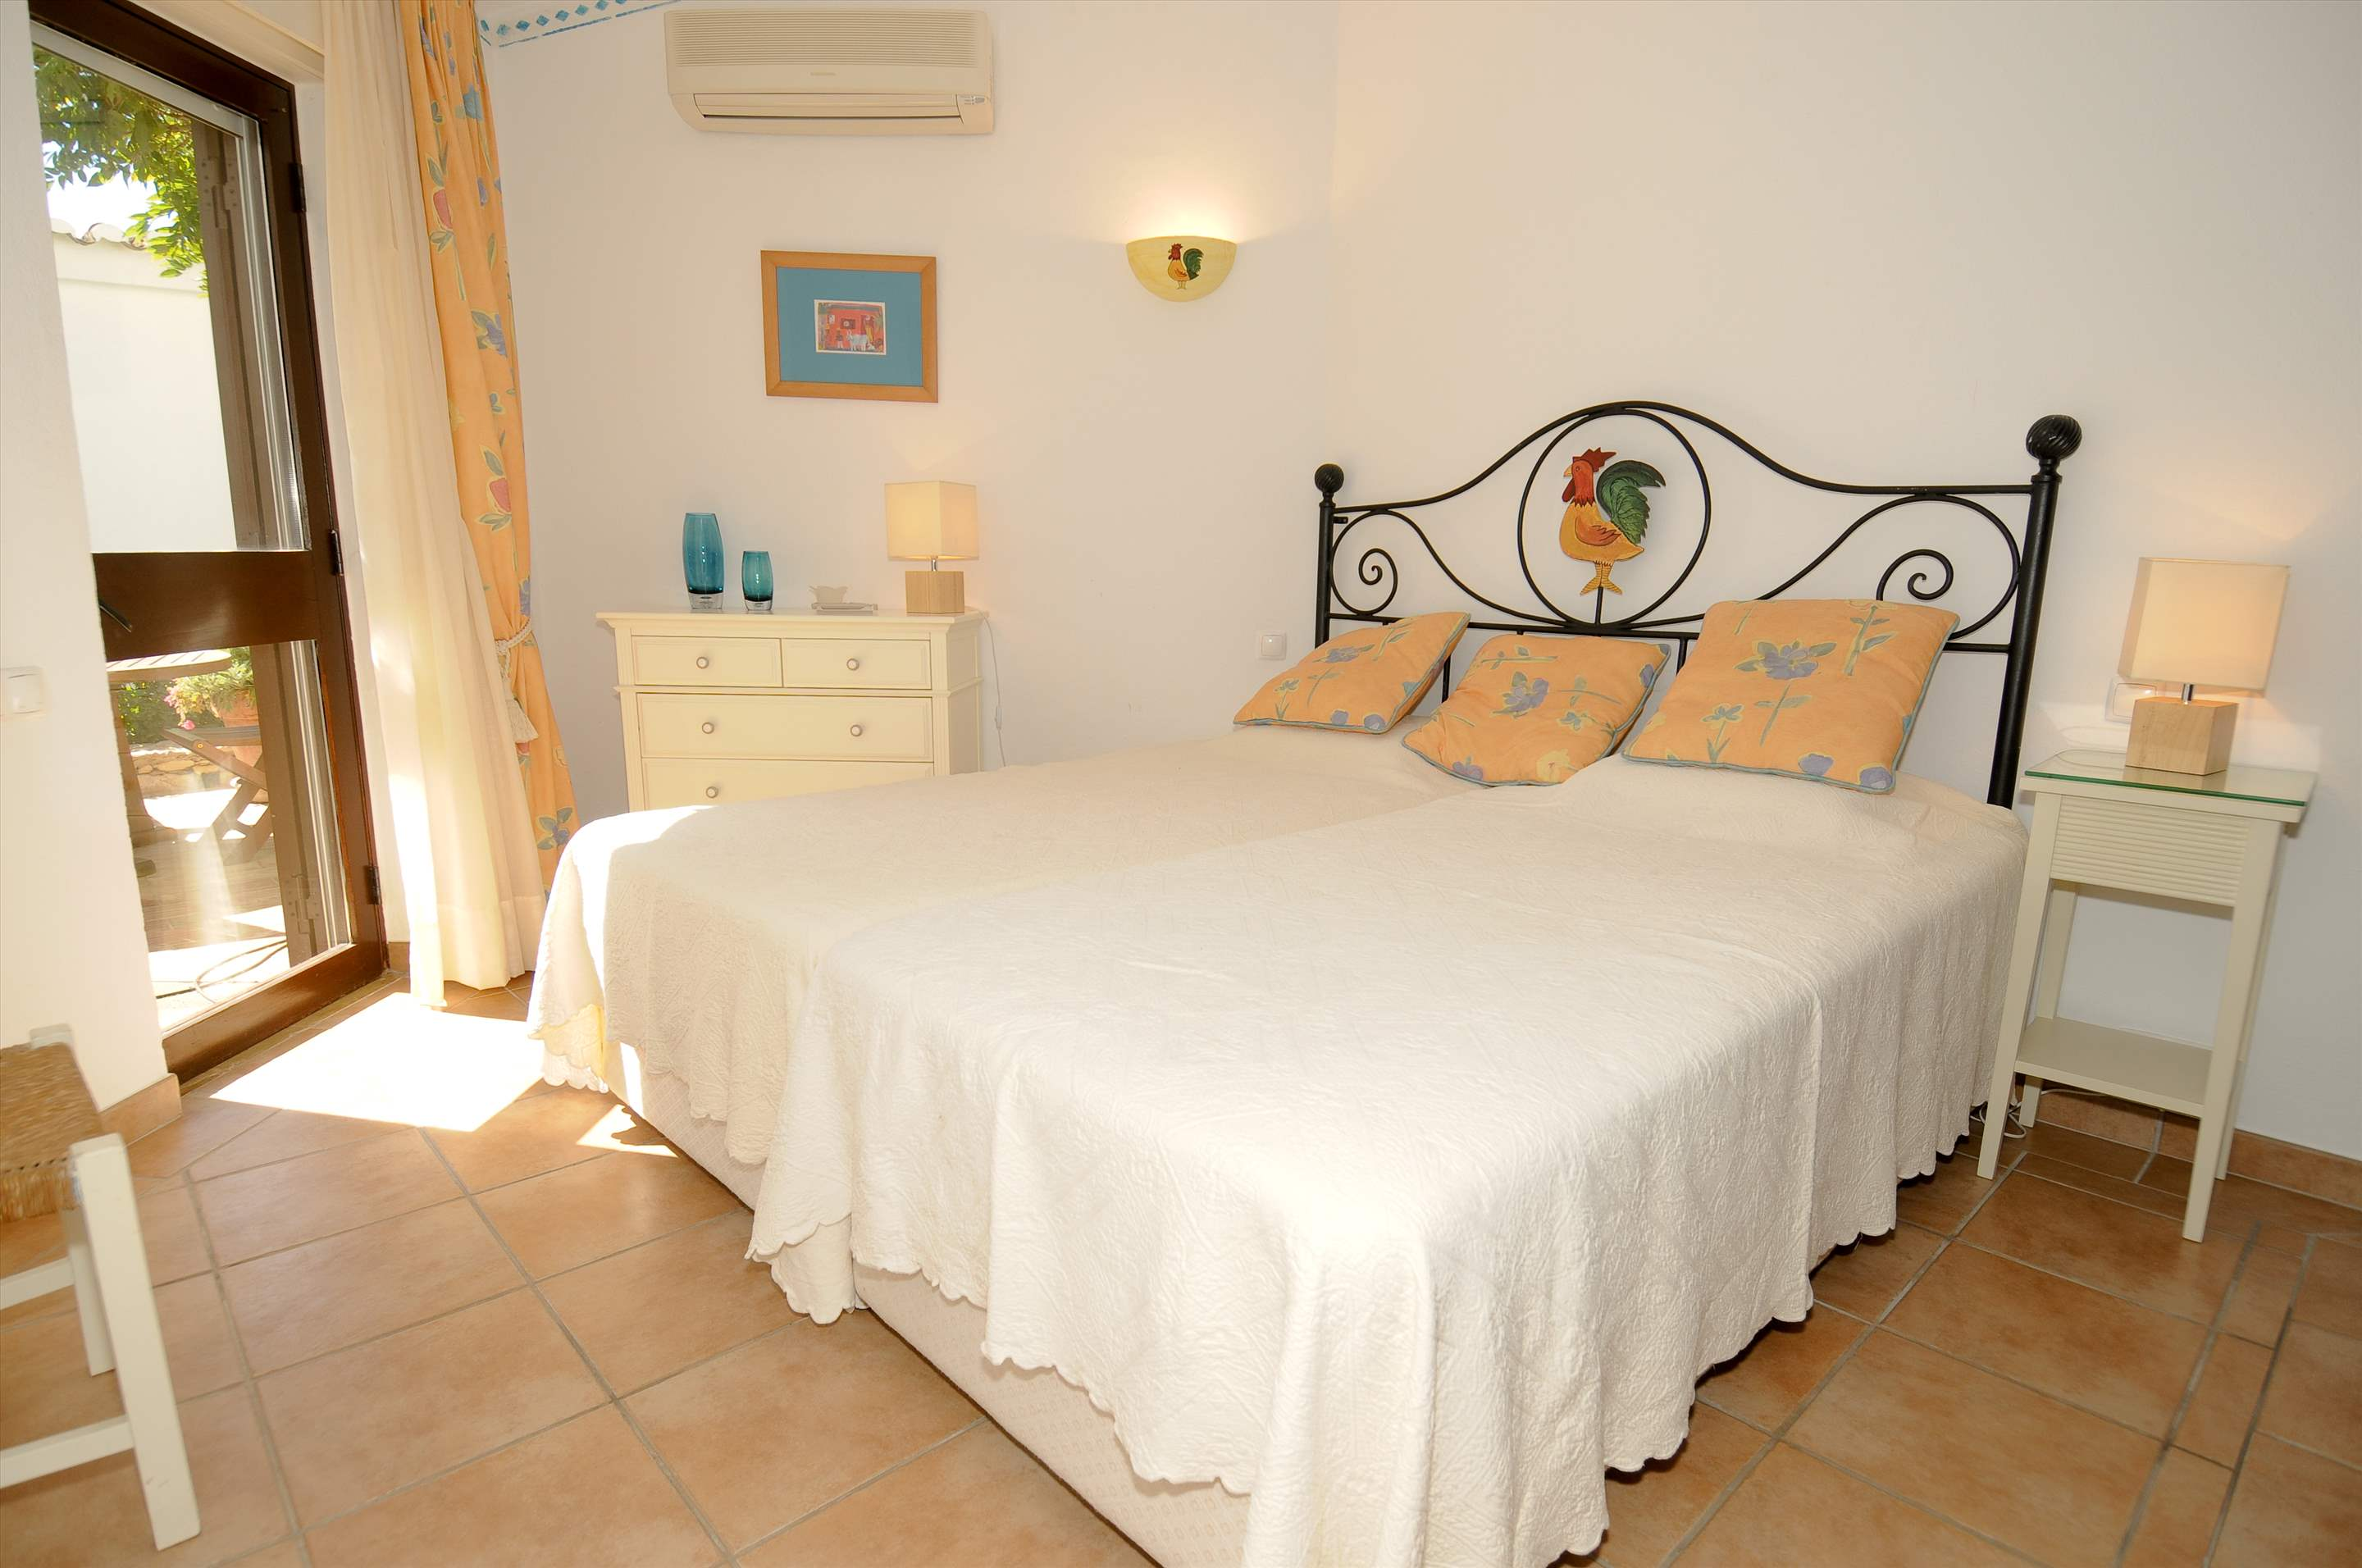 Villa Giroud, 2 bedroom villa in Vale do Lobo, Algarve Photo #9